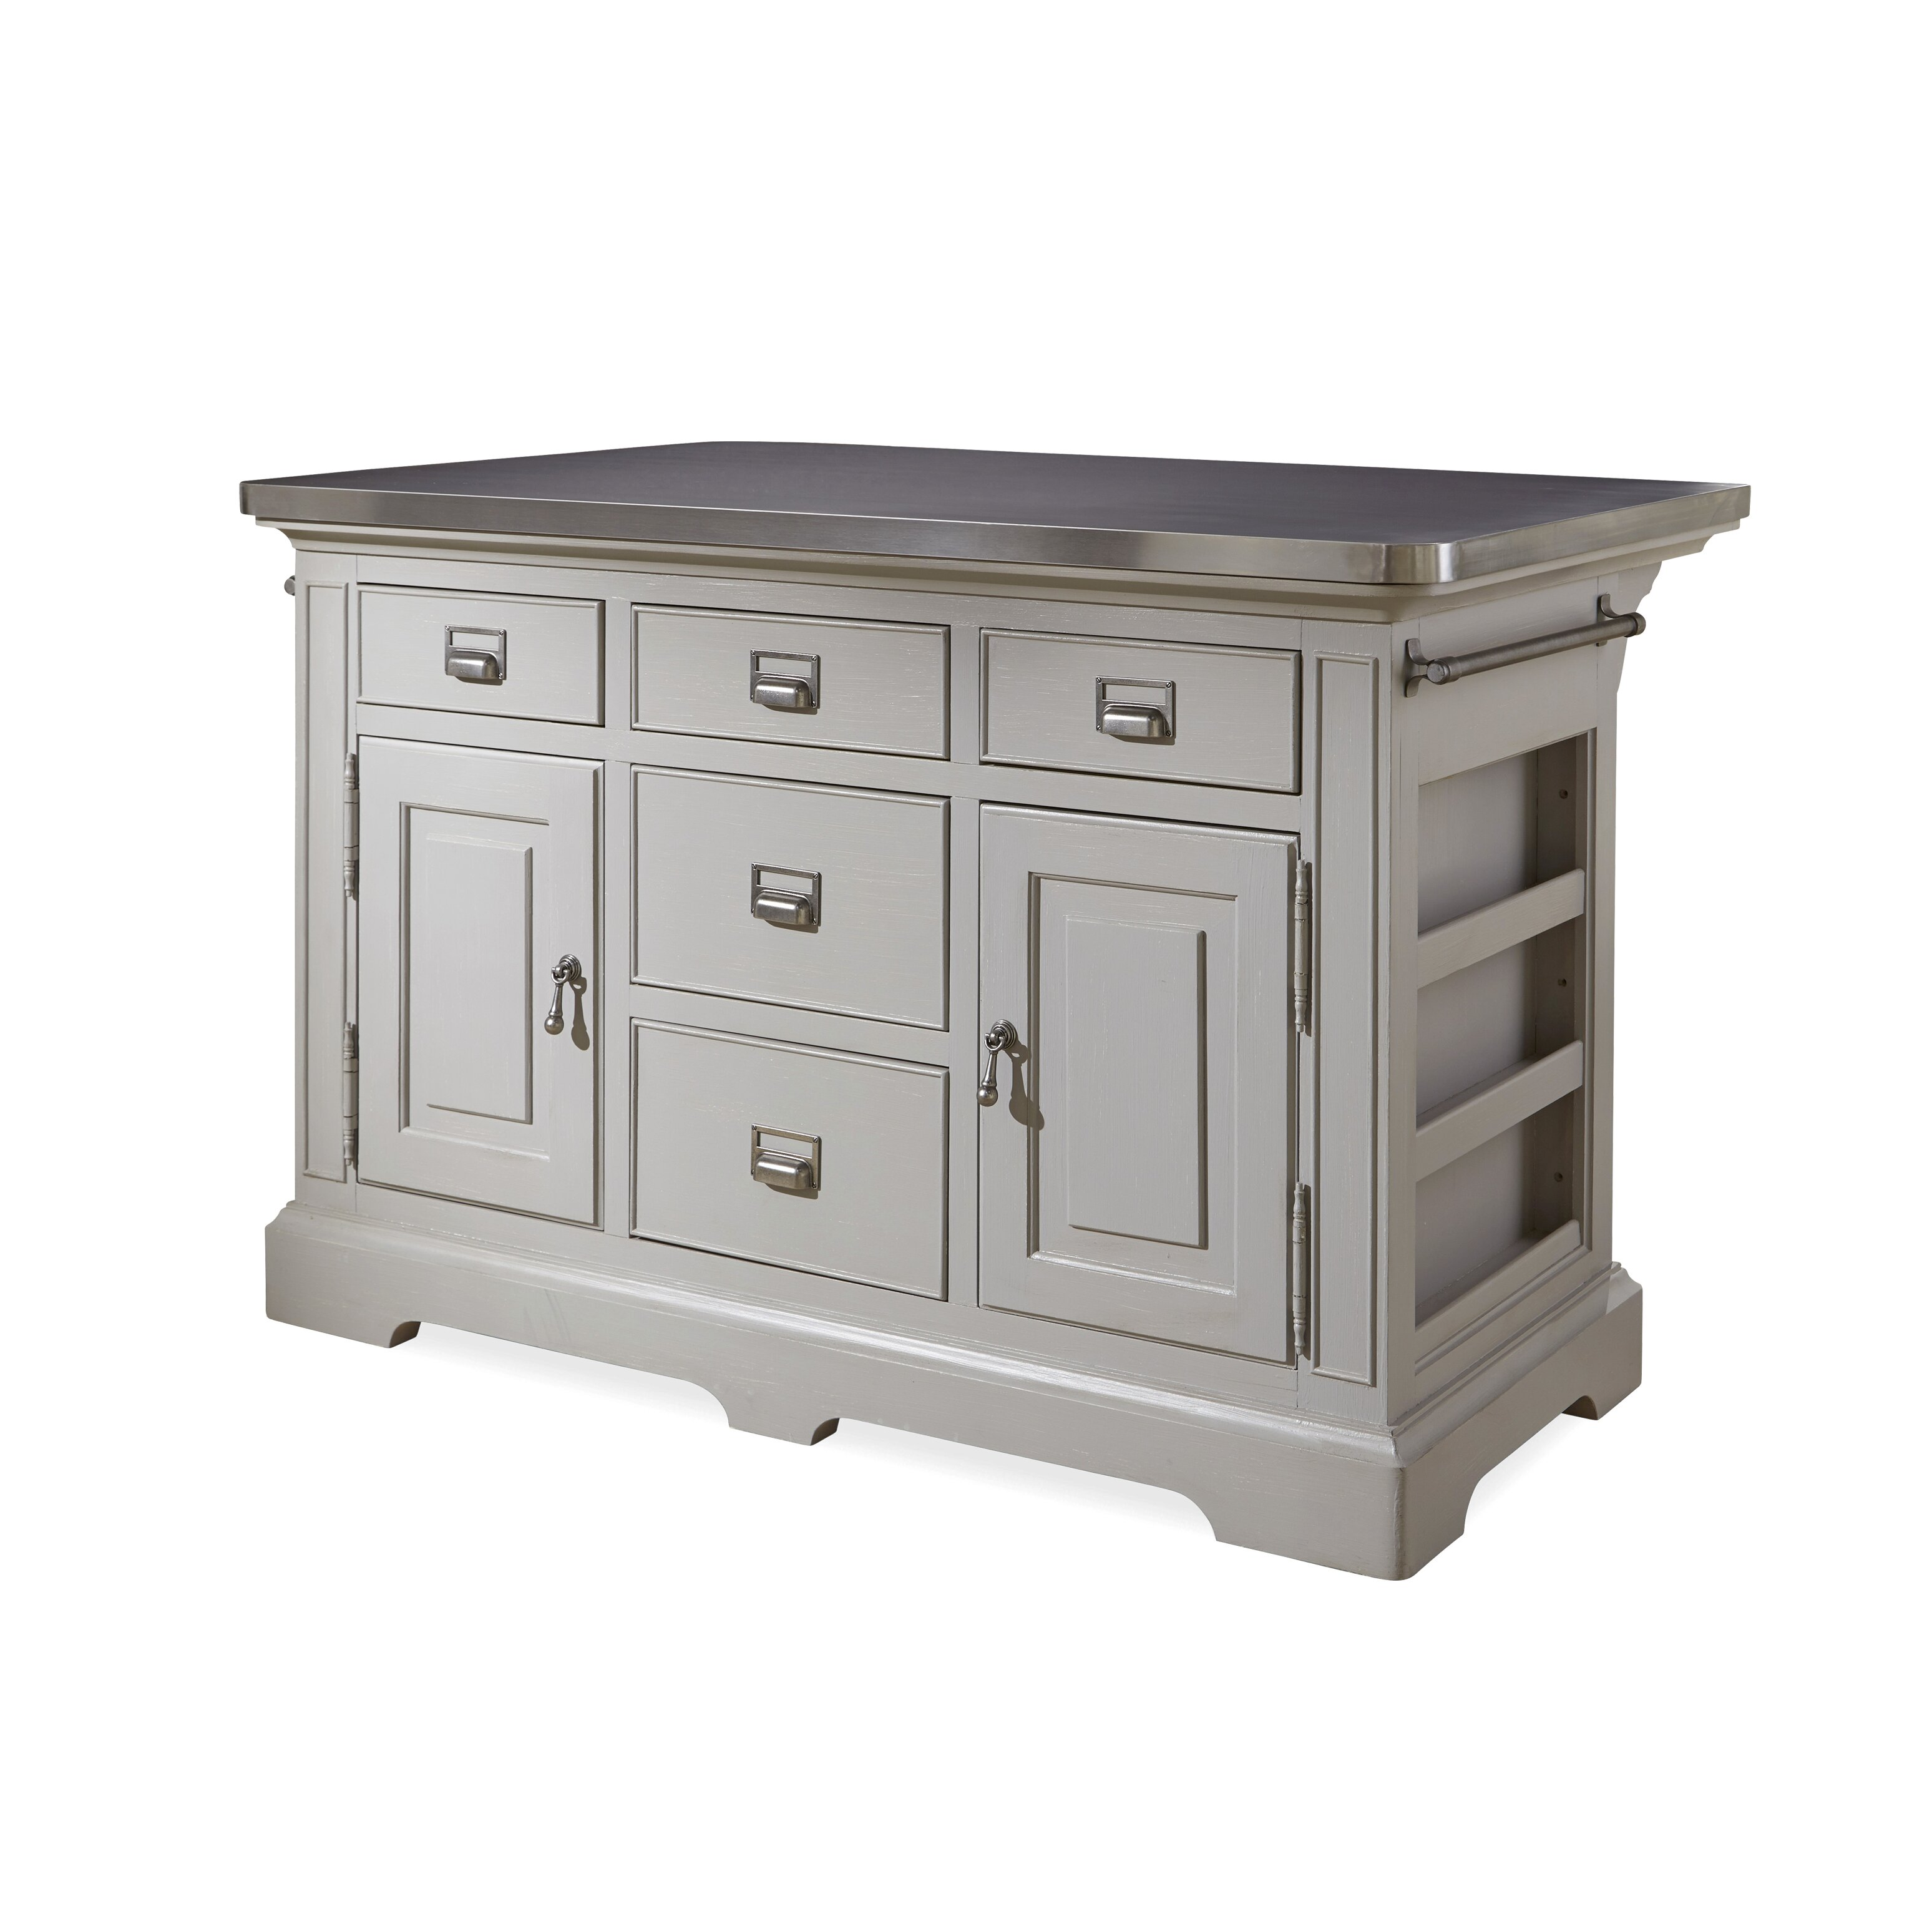 Paula Deen Bedroom Furniture Collection Steel Magnolia Paula Deen Home Wayfair